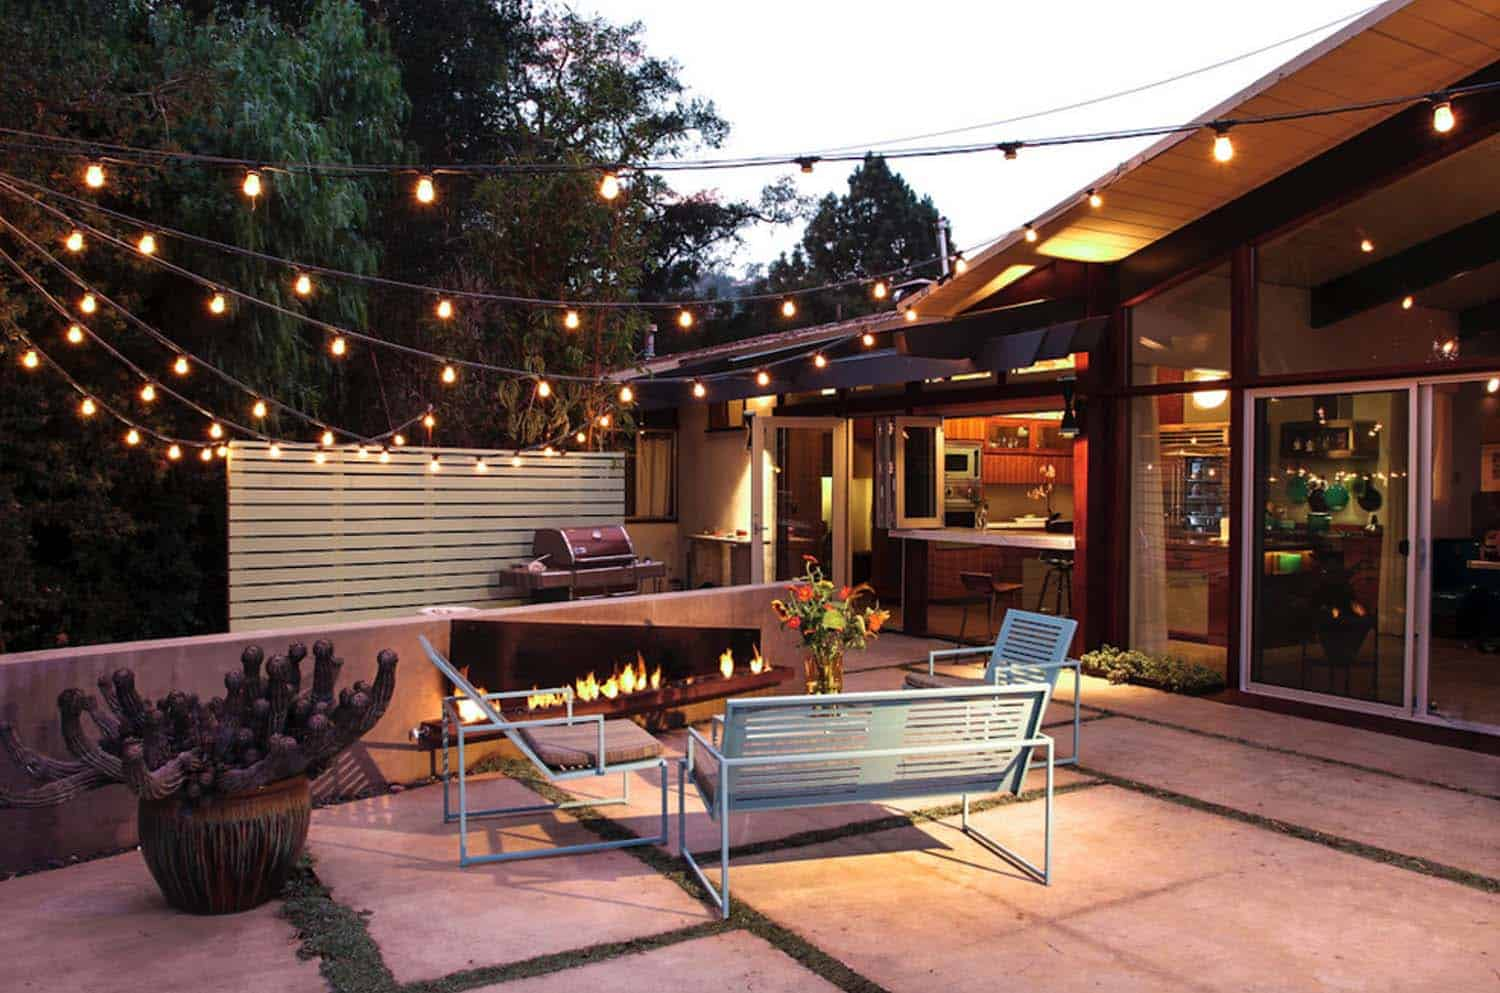 Inspiring String Light Ideas For Outdoors-05-1 Kindesign